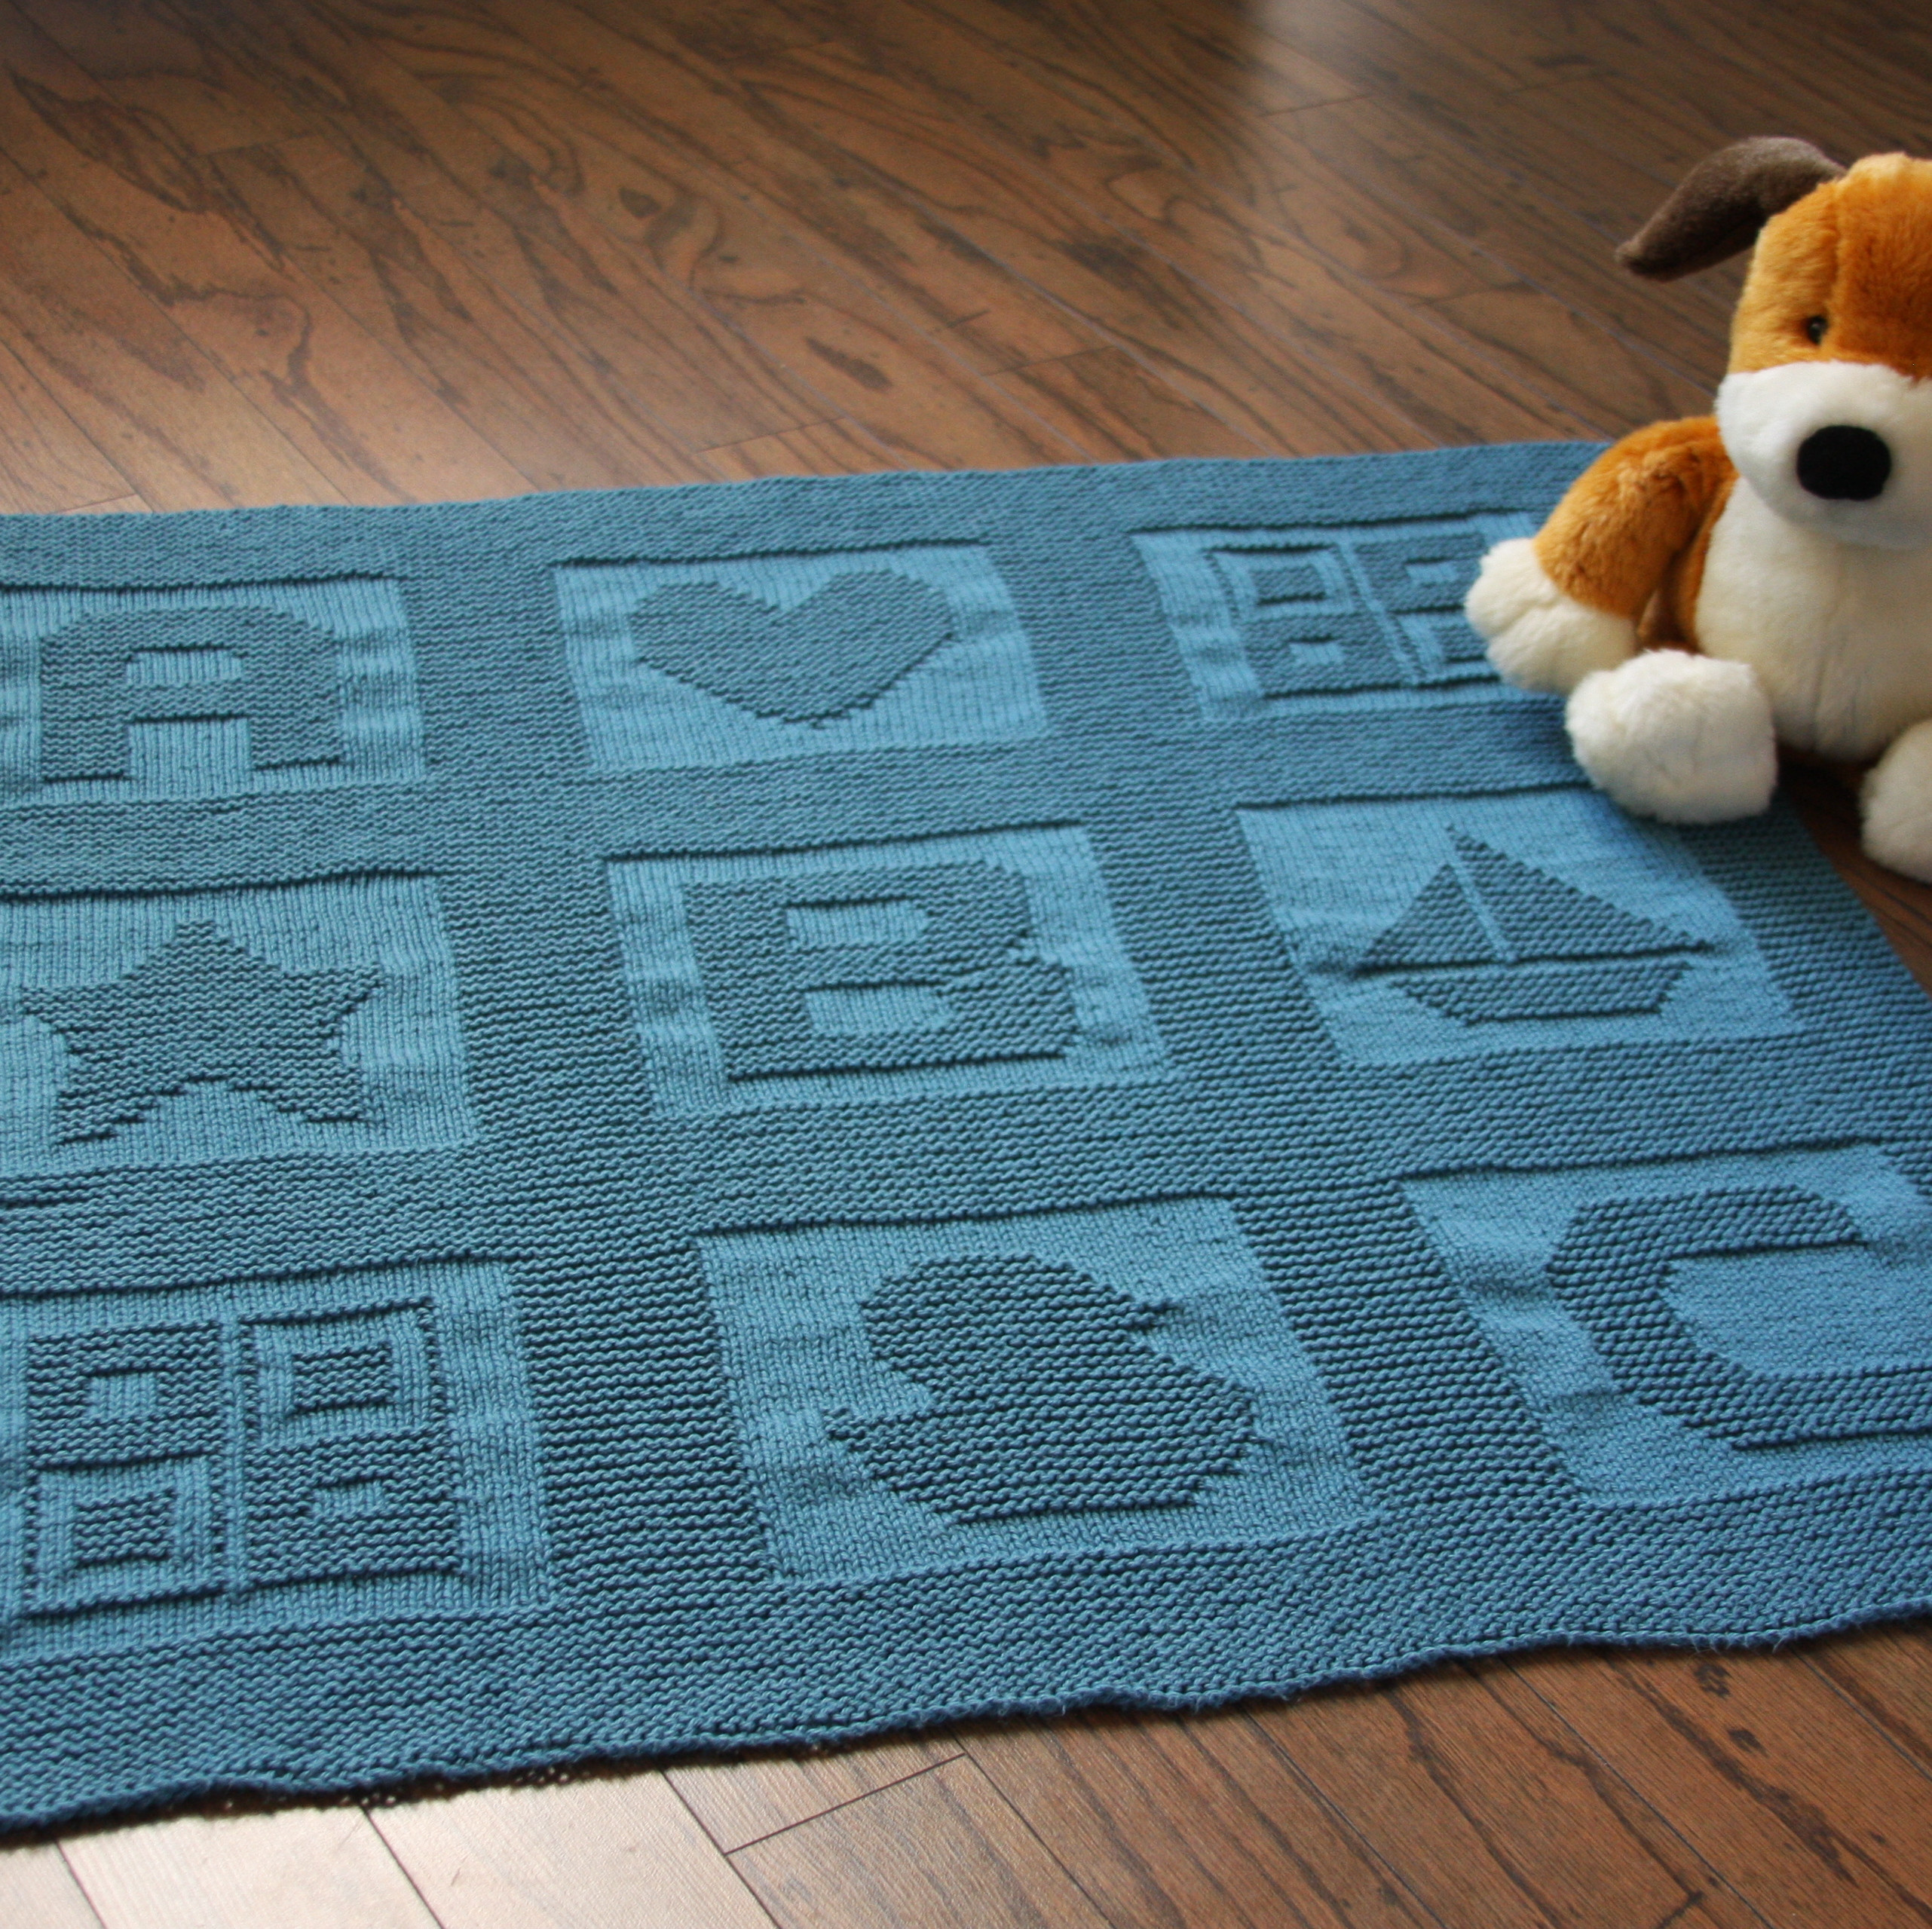 Awesome Abc Baby Blanket Pattern Free Easy Baby Blanket Knitting Patterns Of New 40 Images Free Easy Baby Blanket Knitting Patterns